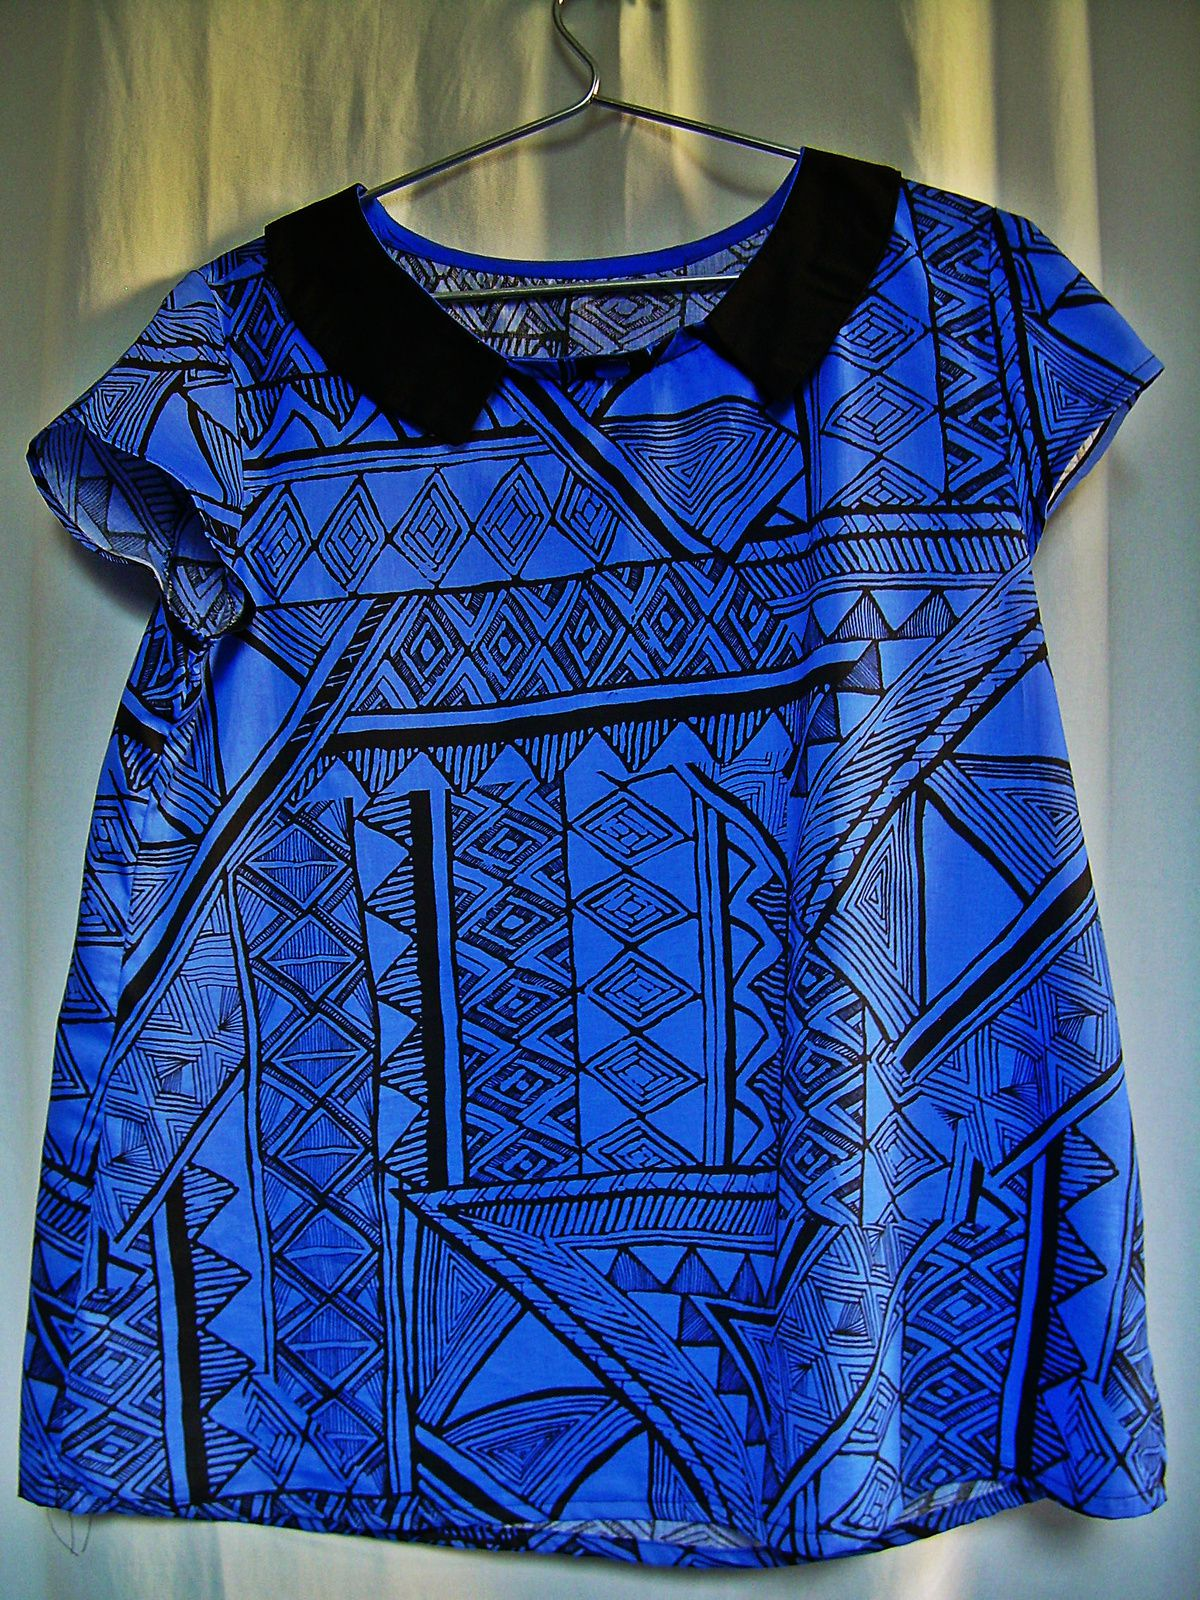 Le blues de la blouse bleue